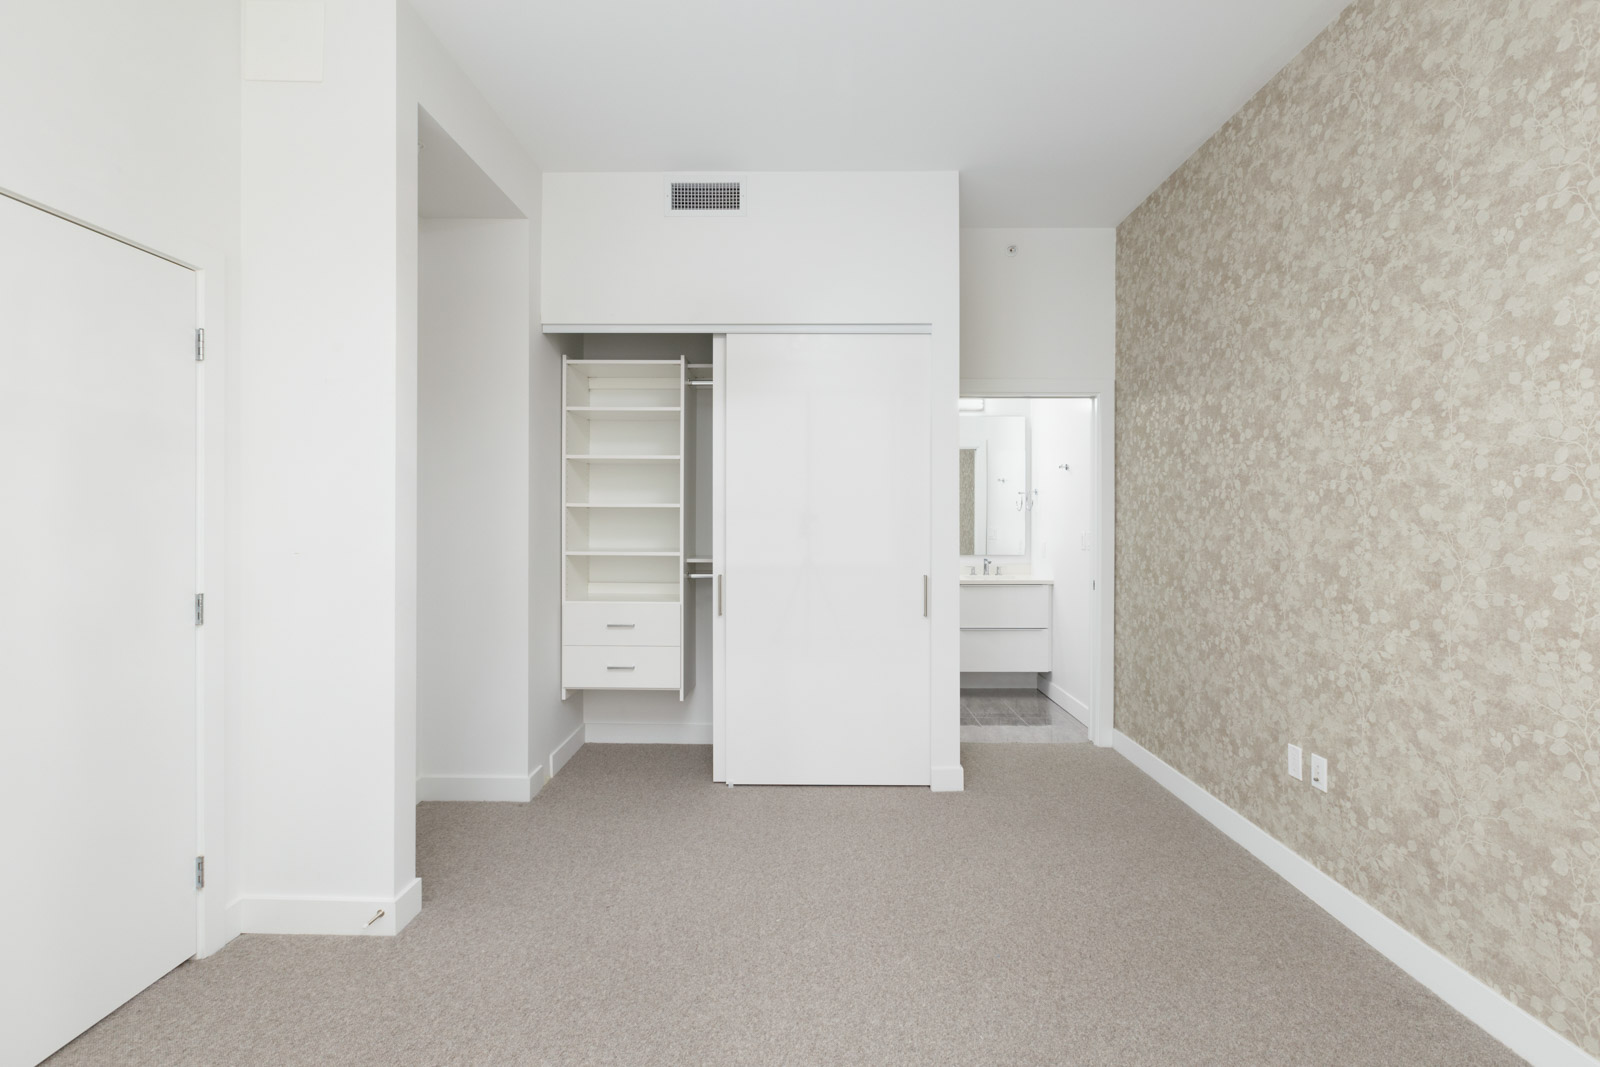 Spacious bedroom with a large closet with organizers built-in and access to the bathroom in a rental townhouse in West Vancouver listed by Birds Nest Properties in Vancouver